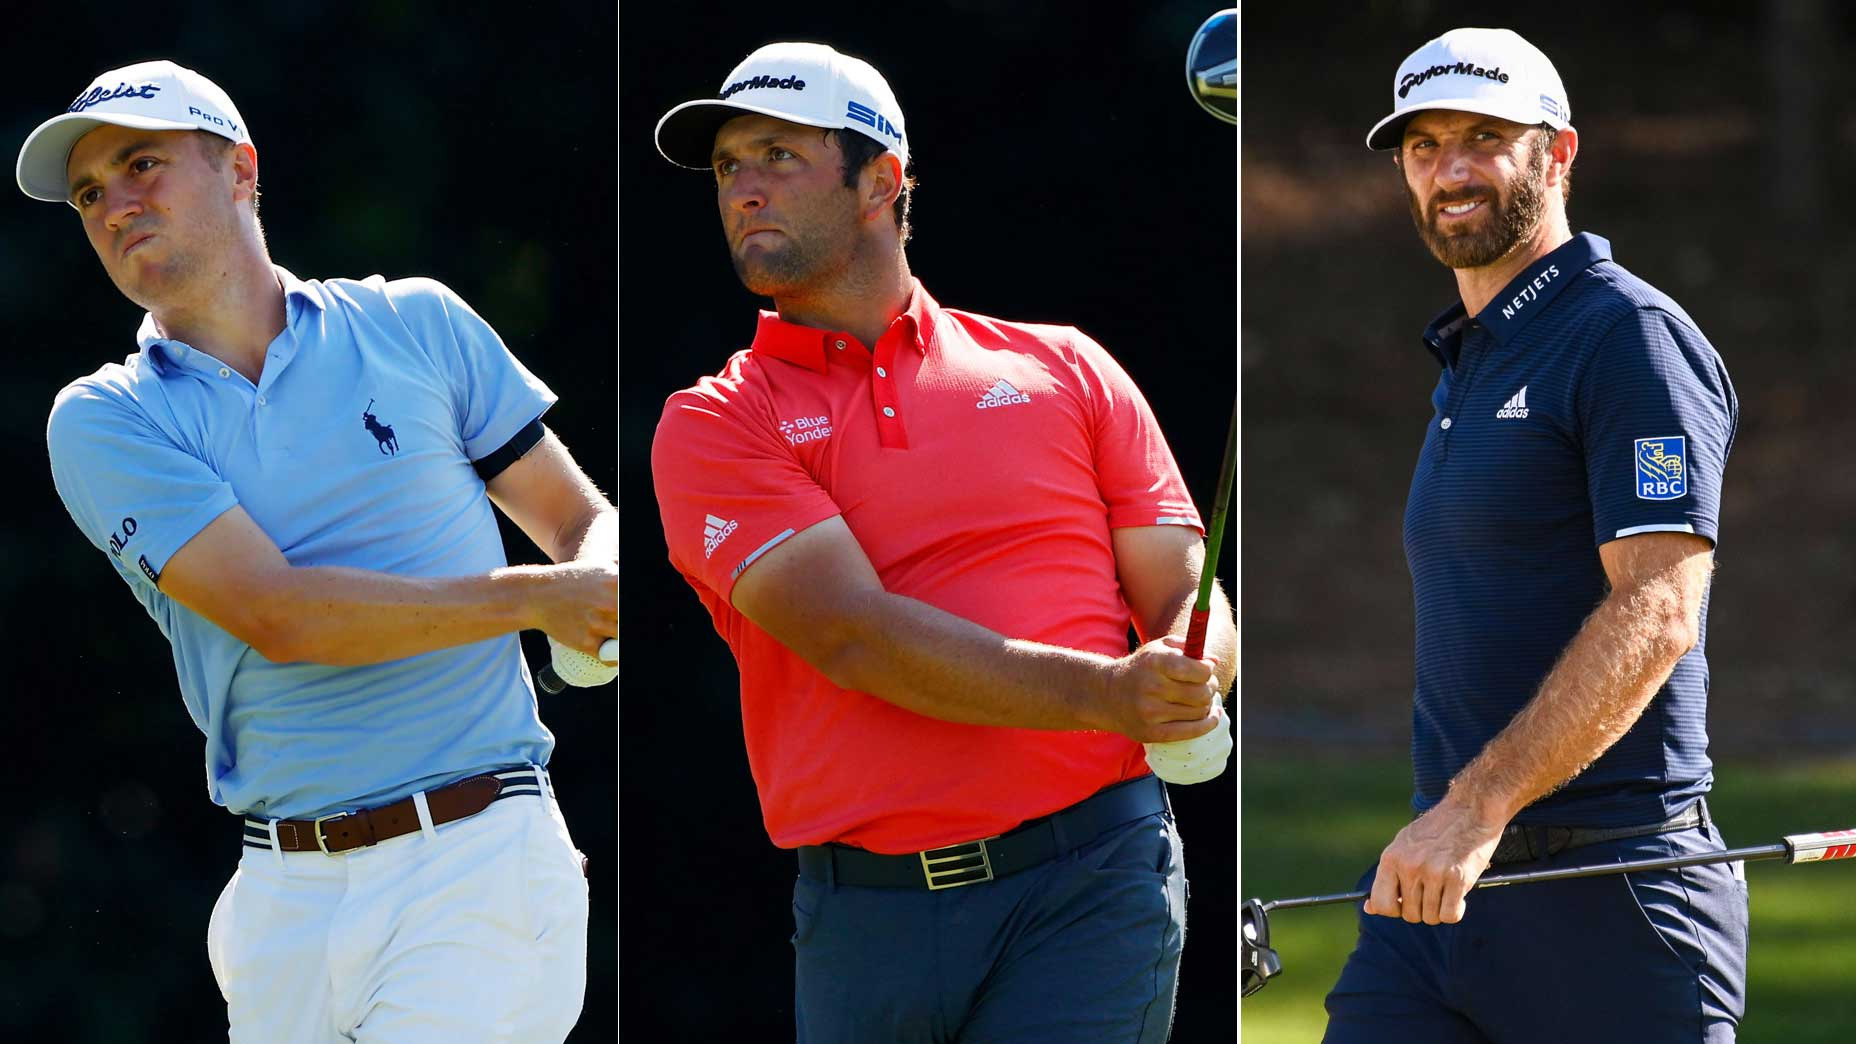 D.J., Rahm And J.T. -- The Genesis Field Is Top-Heavy With Talent